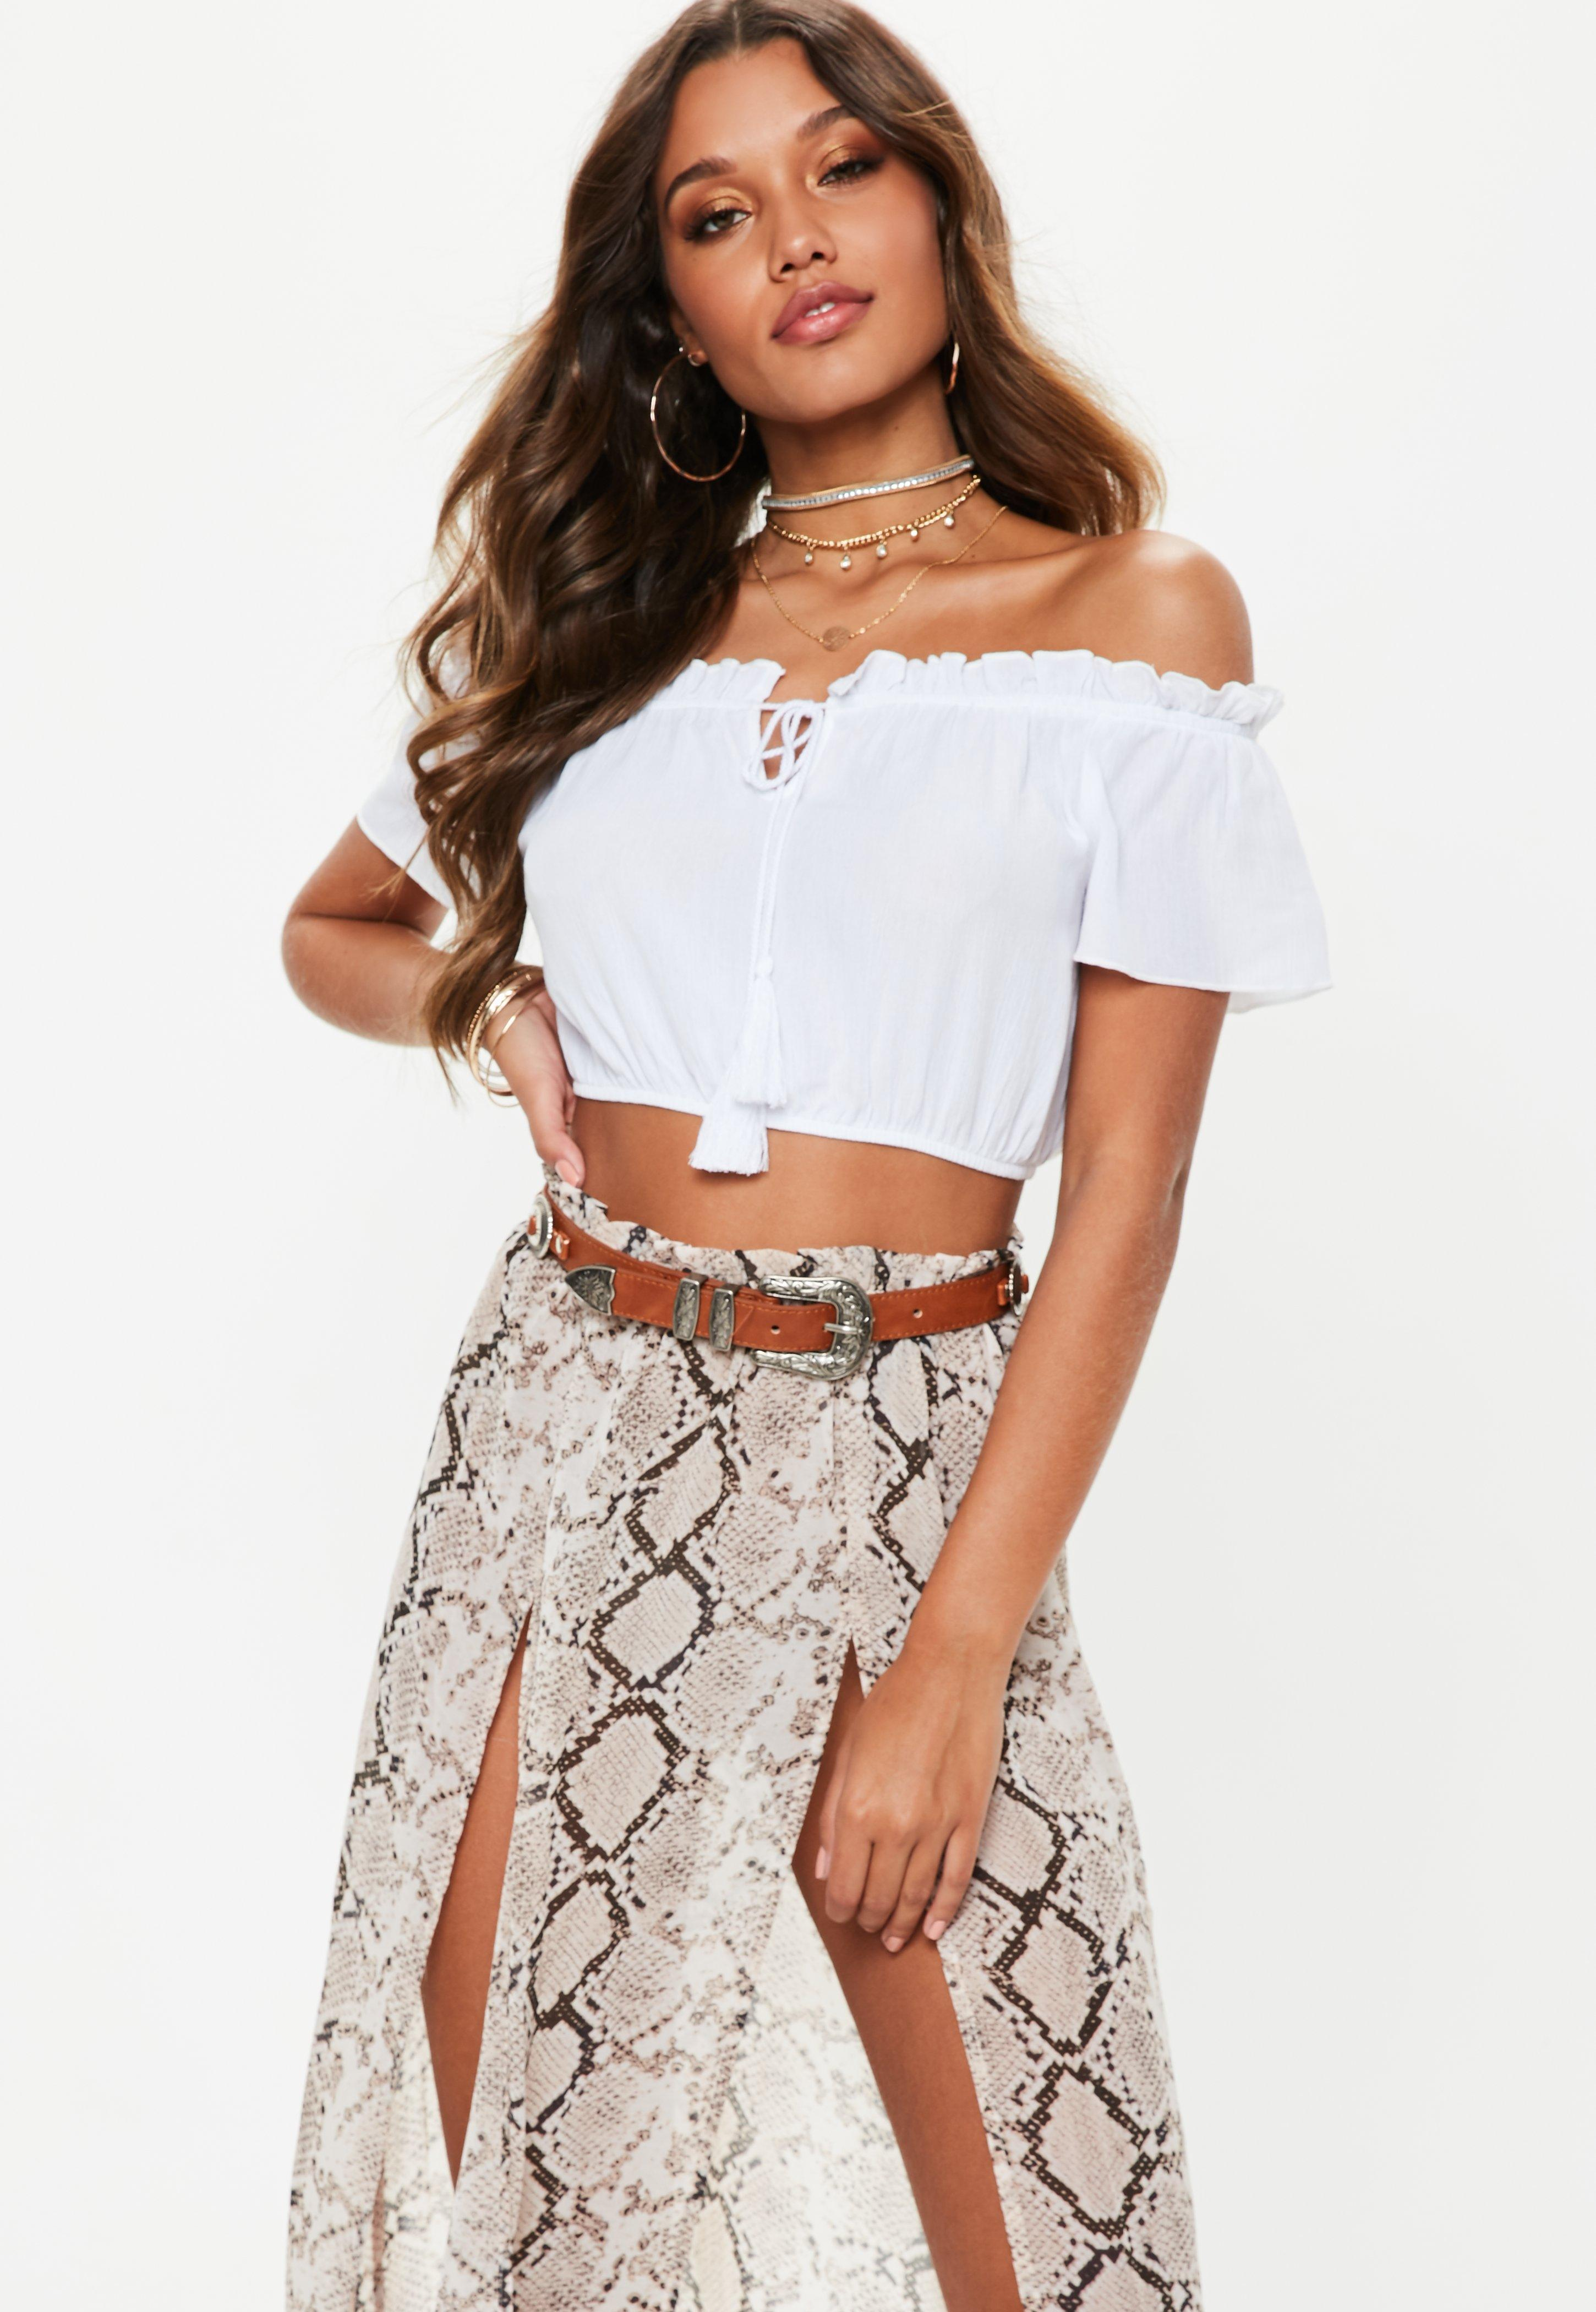 12caa99827c Bardot Tops - Off the Shoulder Tops | Missguided